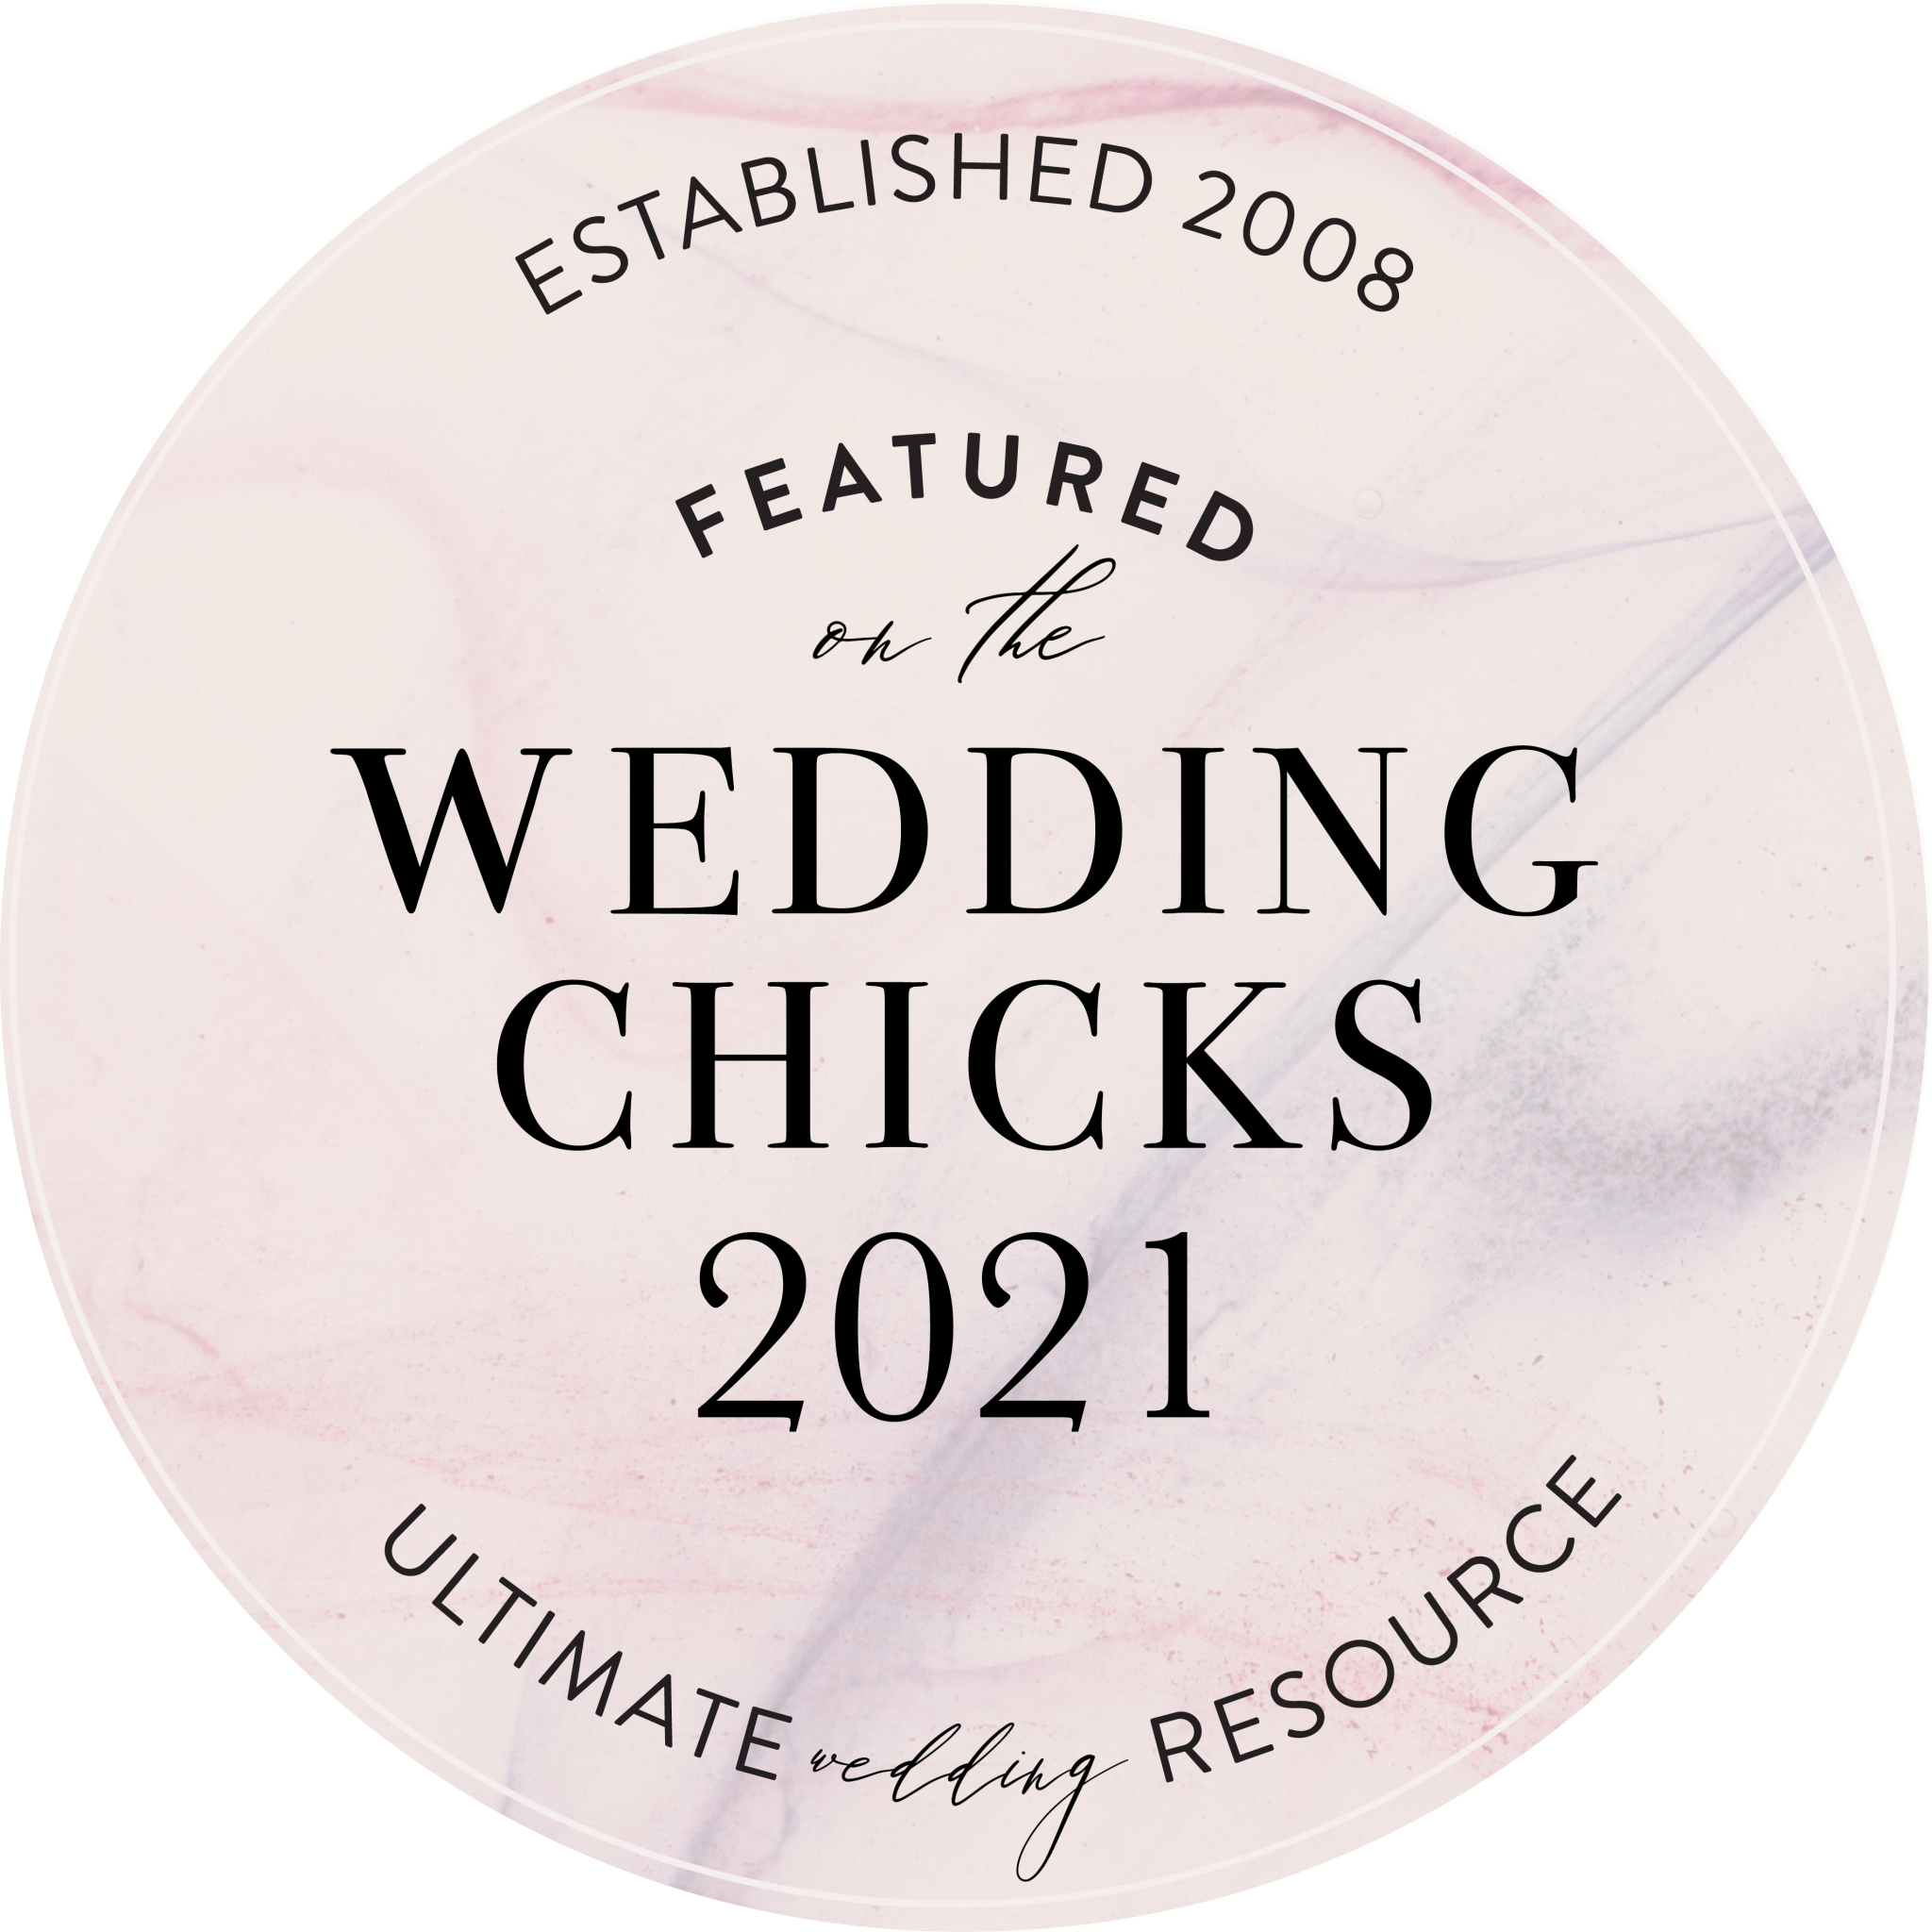 meadows events featured on wedding chicks